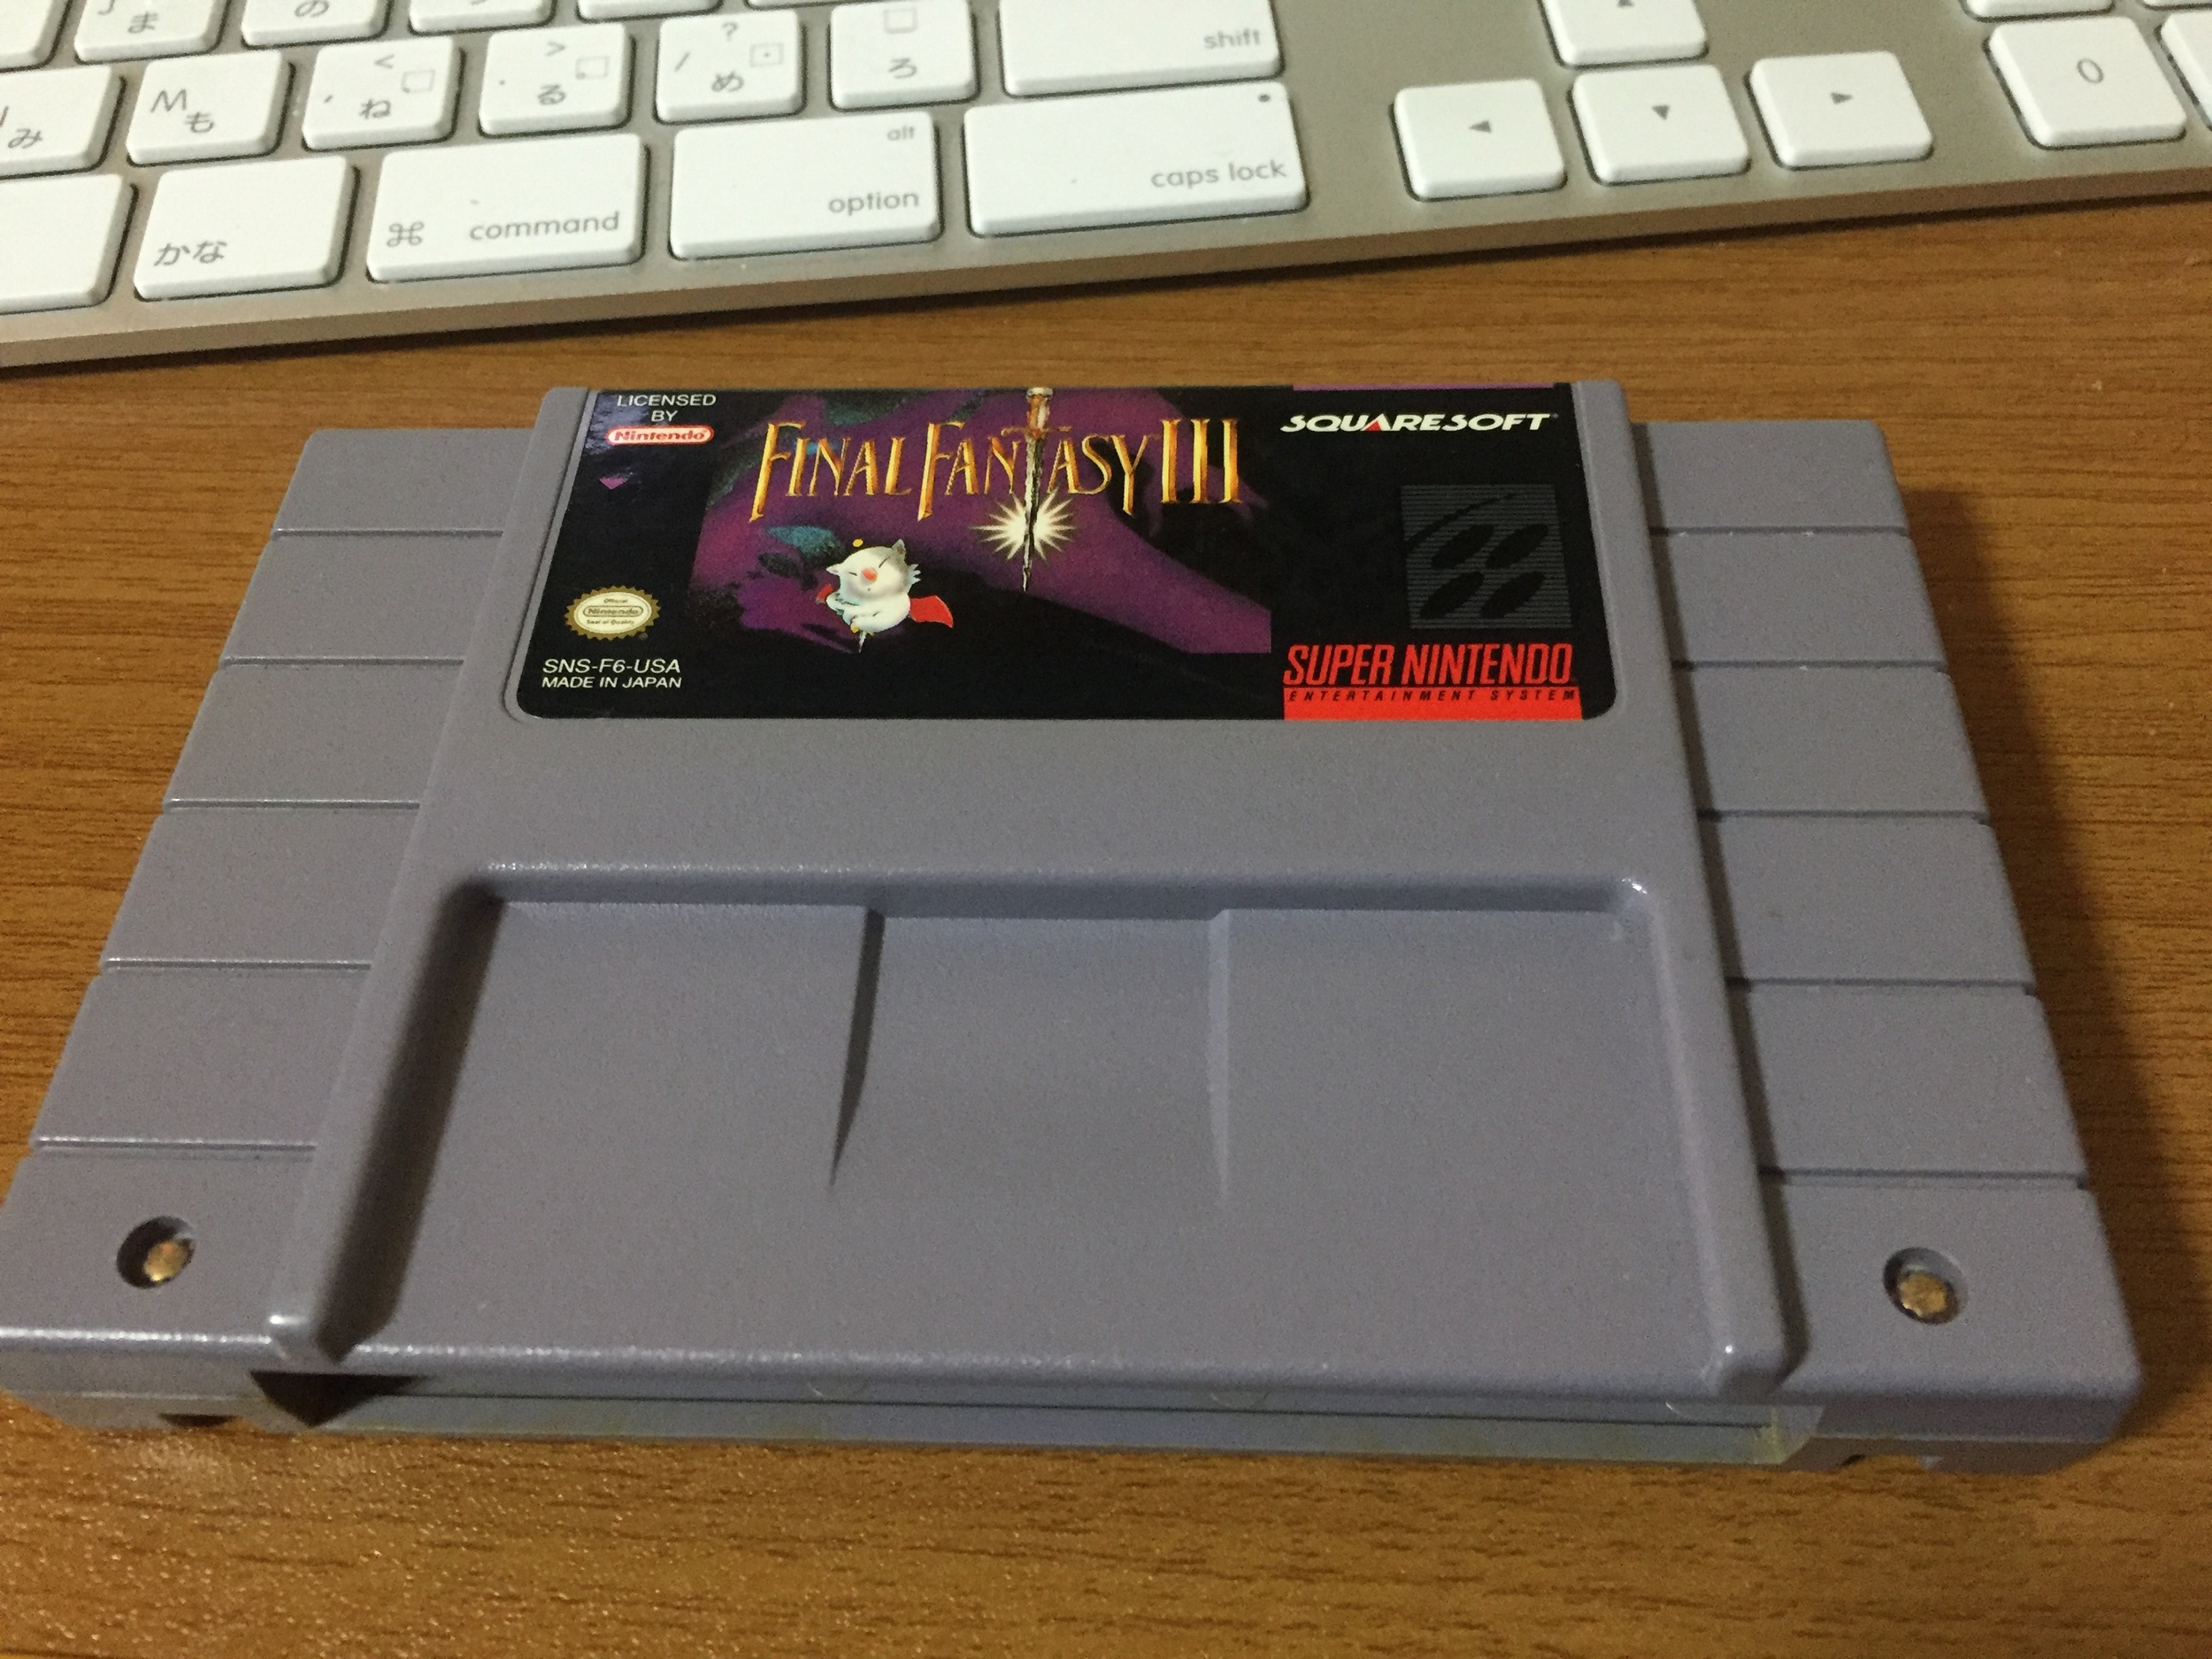 Turns out this is a 1.0 cart, so soon I will be running Sketch Glitch runs, maybe?